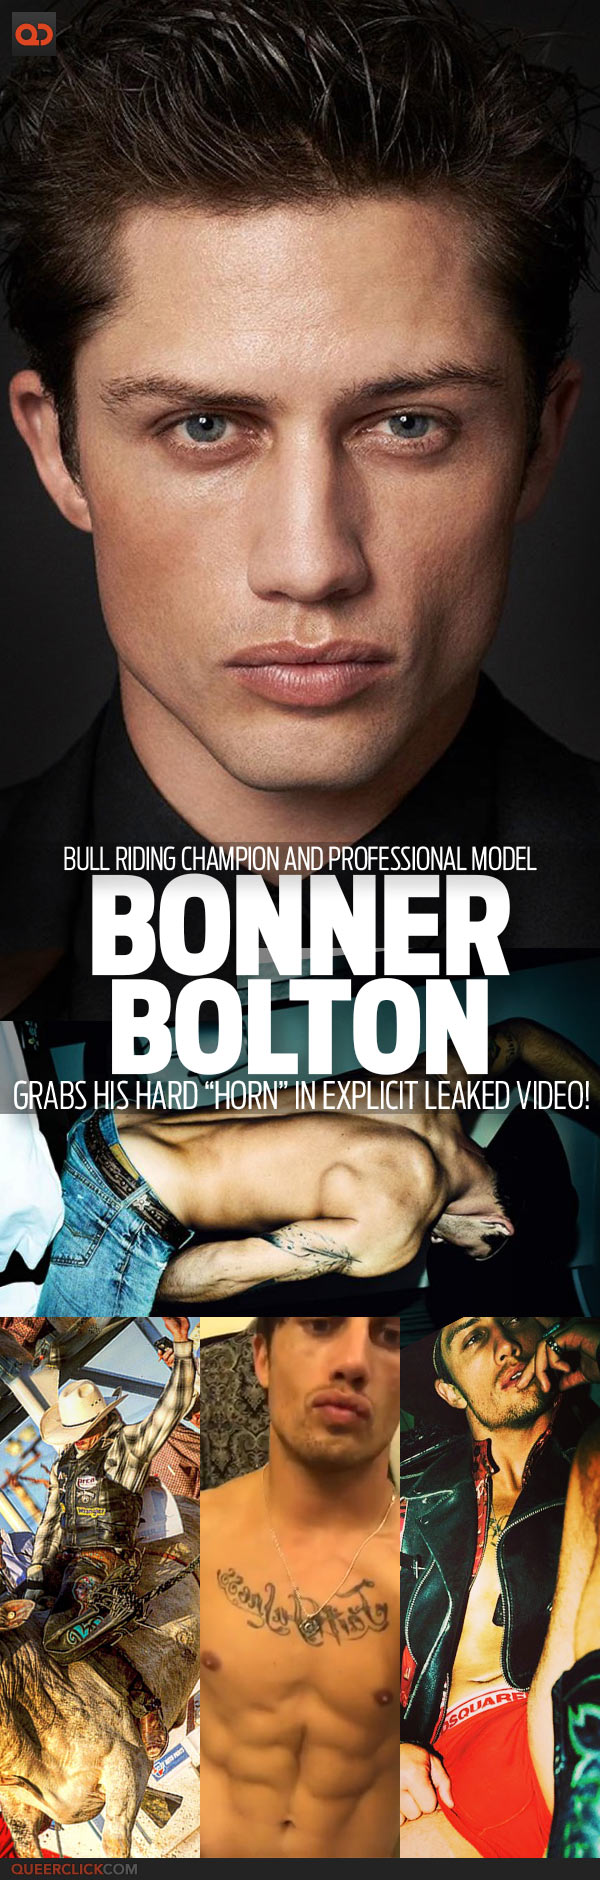 """Bonner Bolton, Bull Riding Champion And Professional Model, Grabs His Hard """"Horn"""" In Explicit Leaked Video!"""